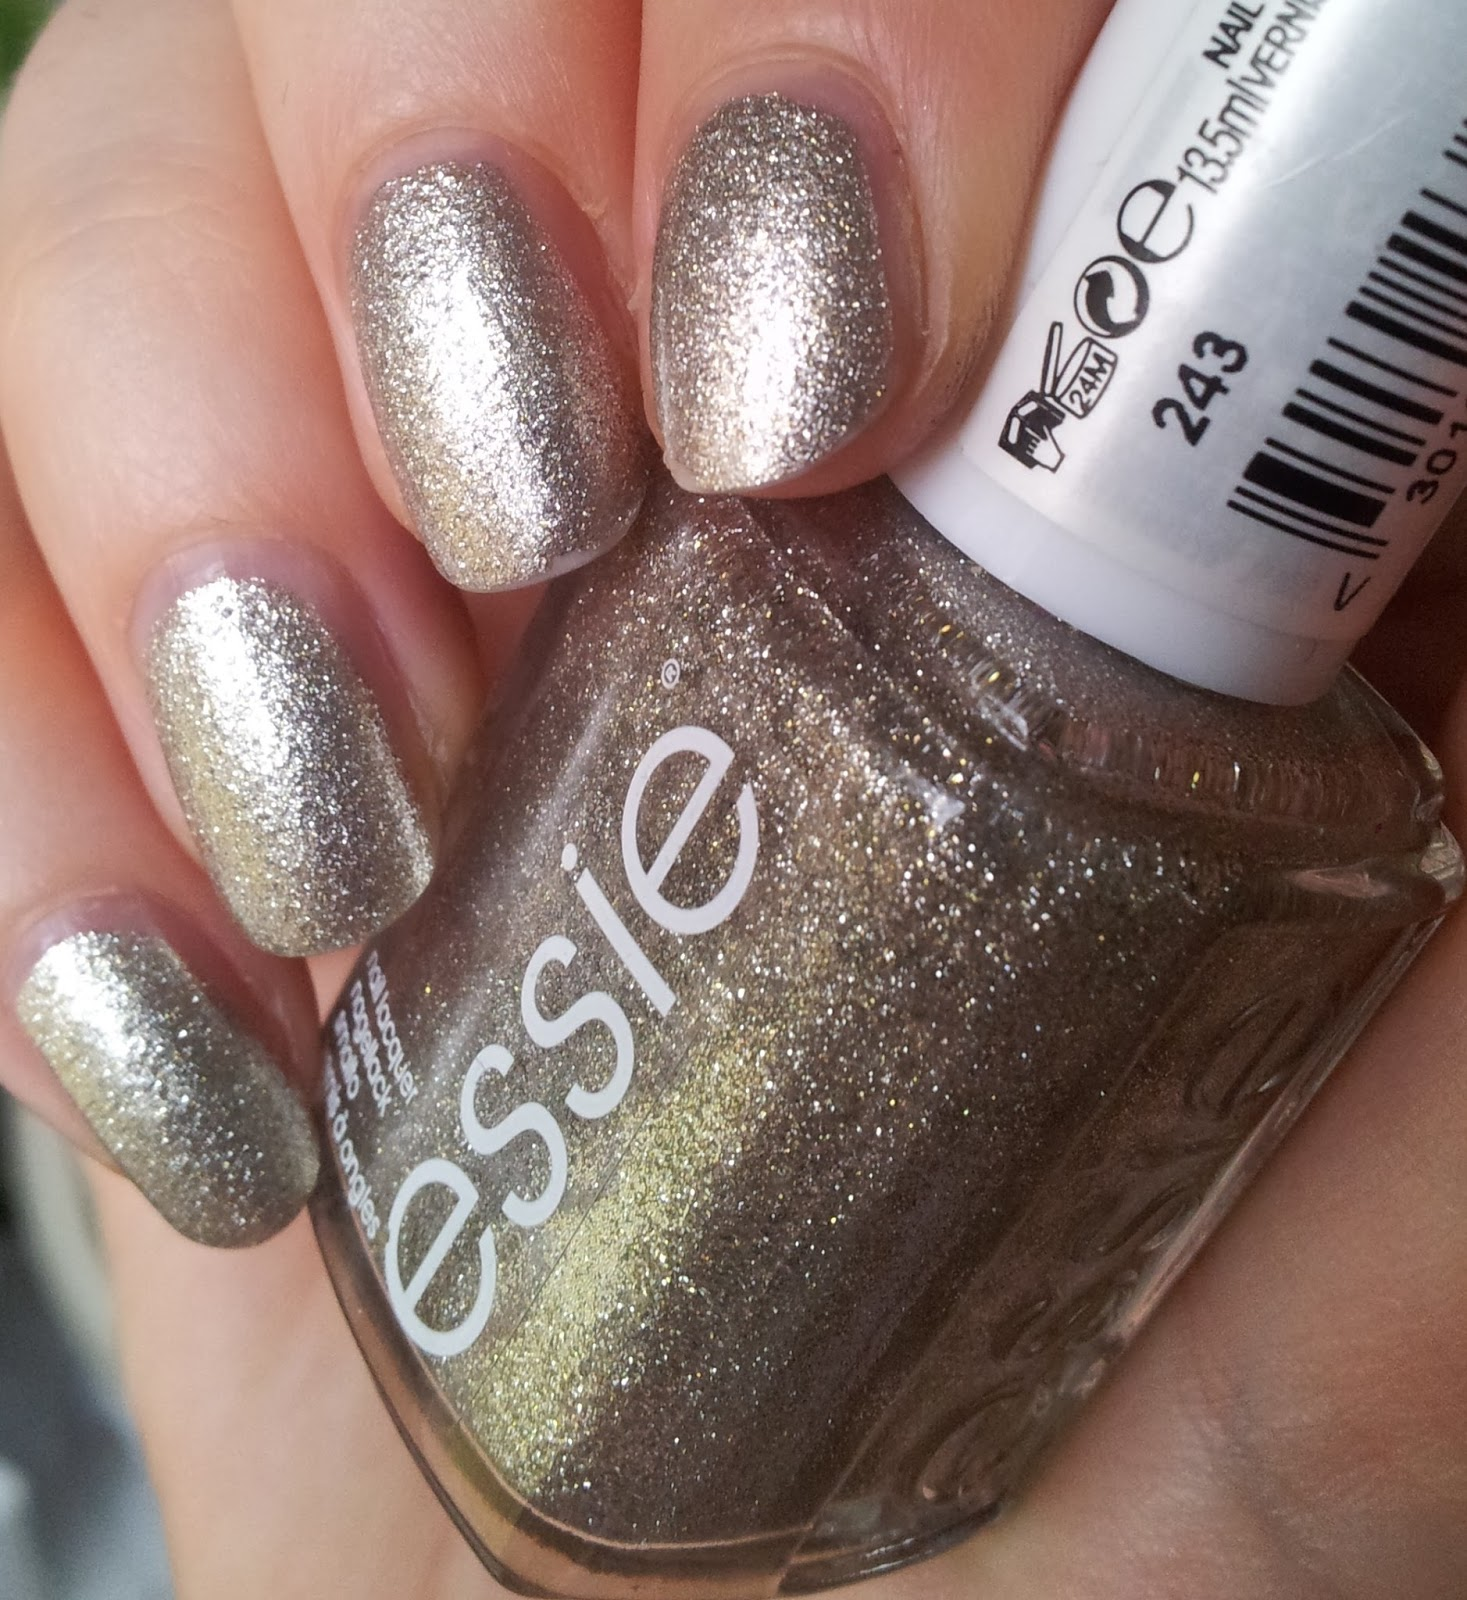 essie: Beyond cozy (Leading lady collection 2012)